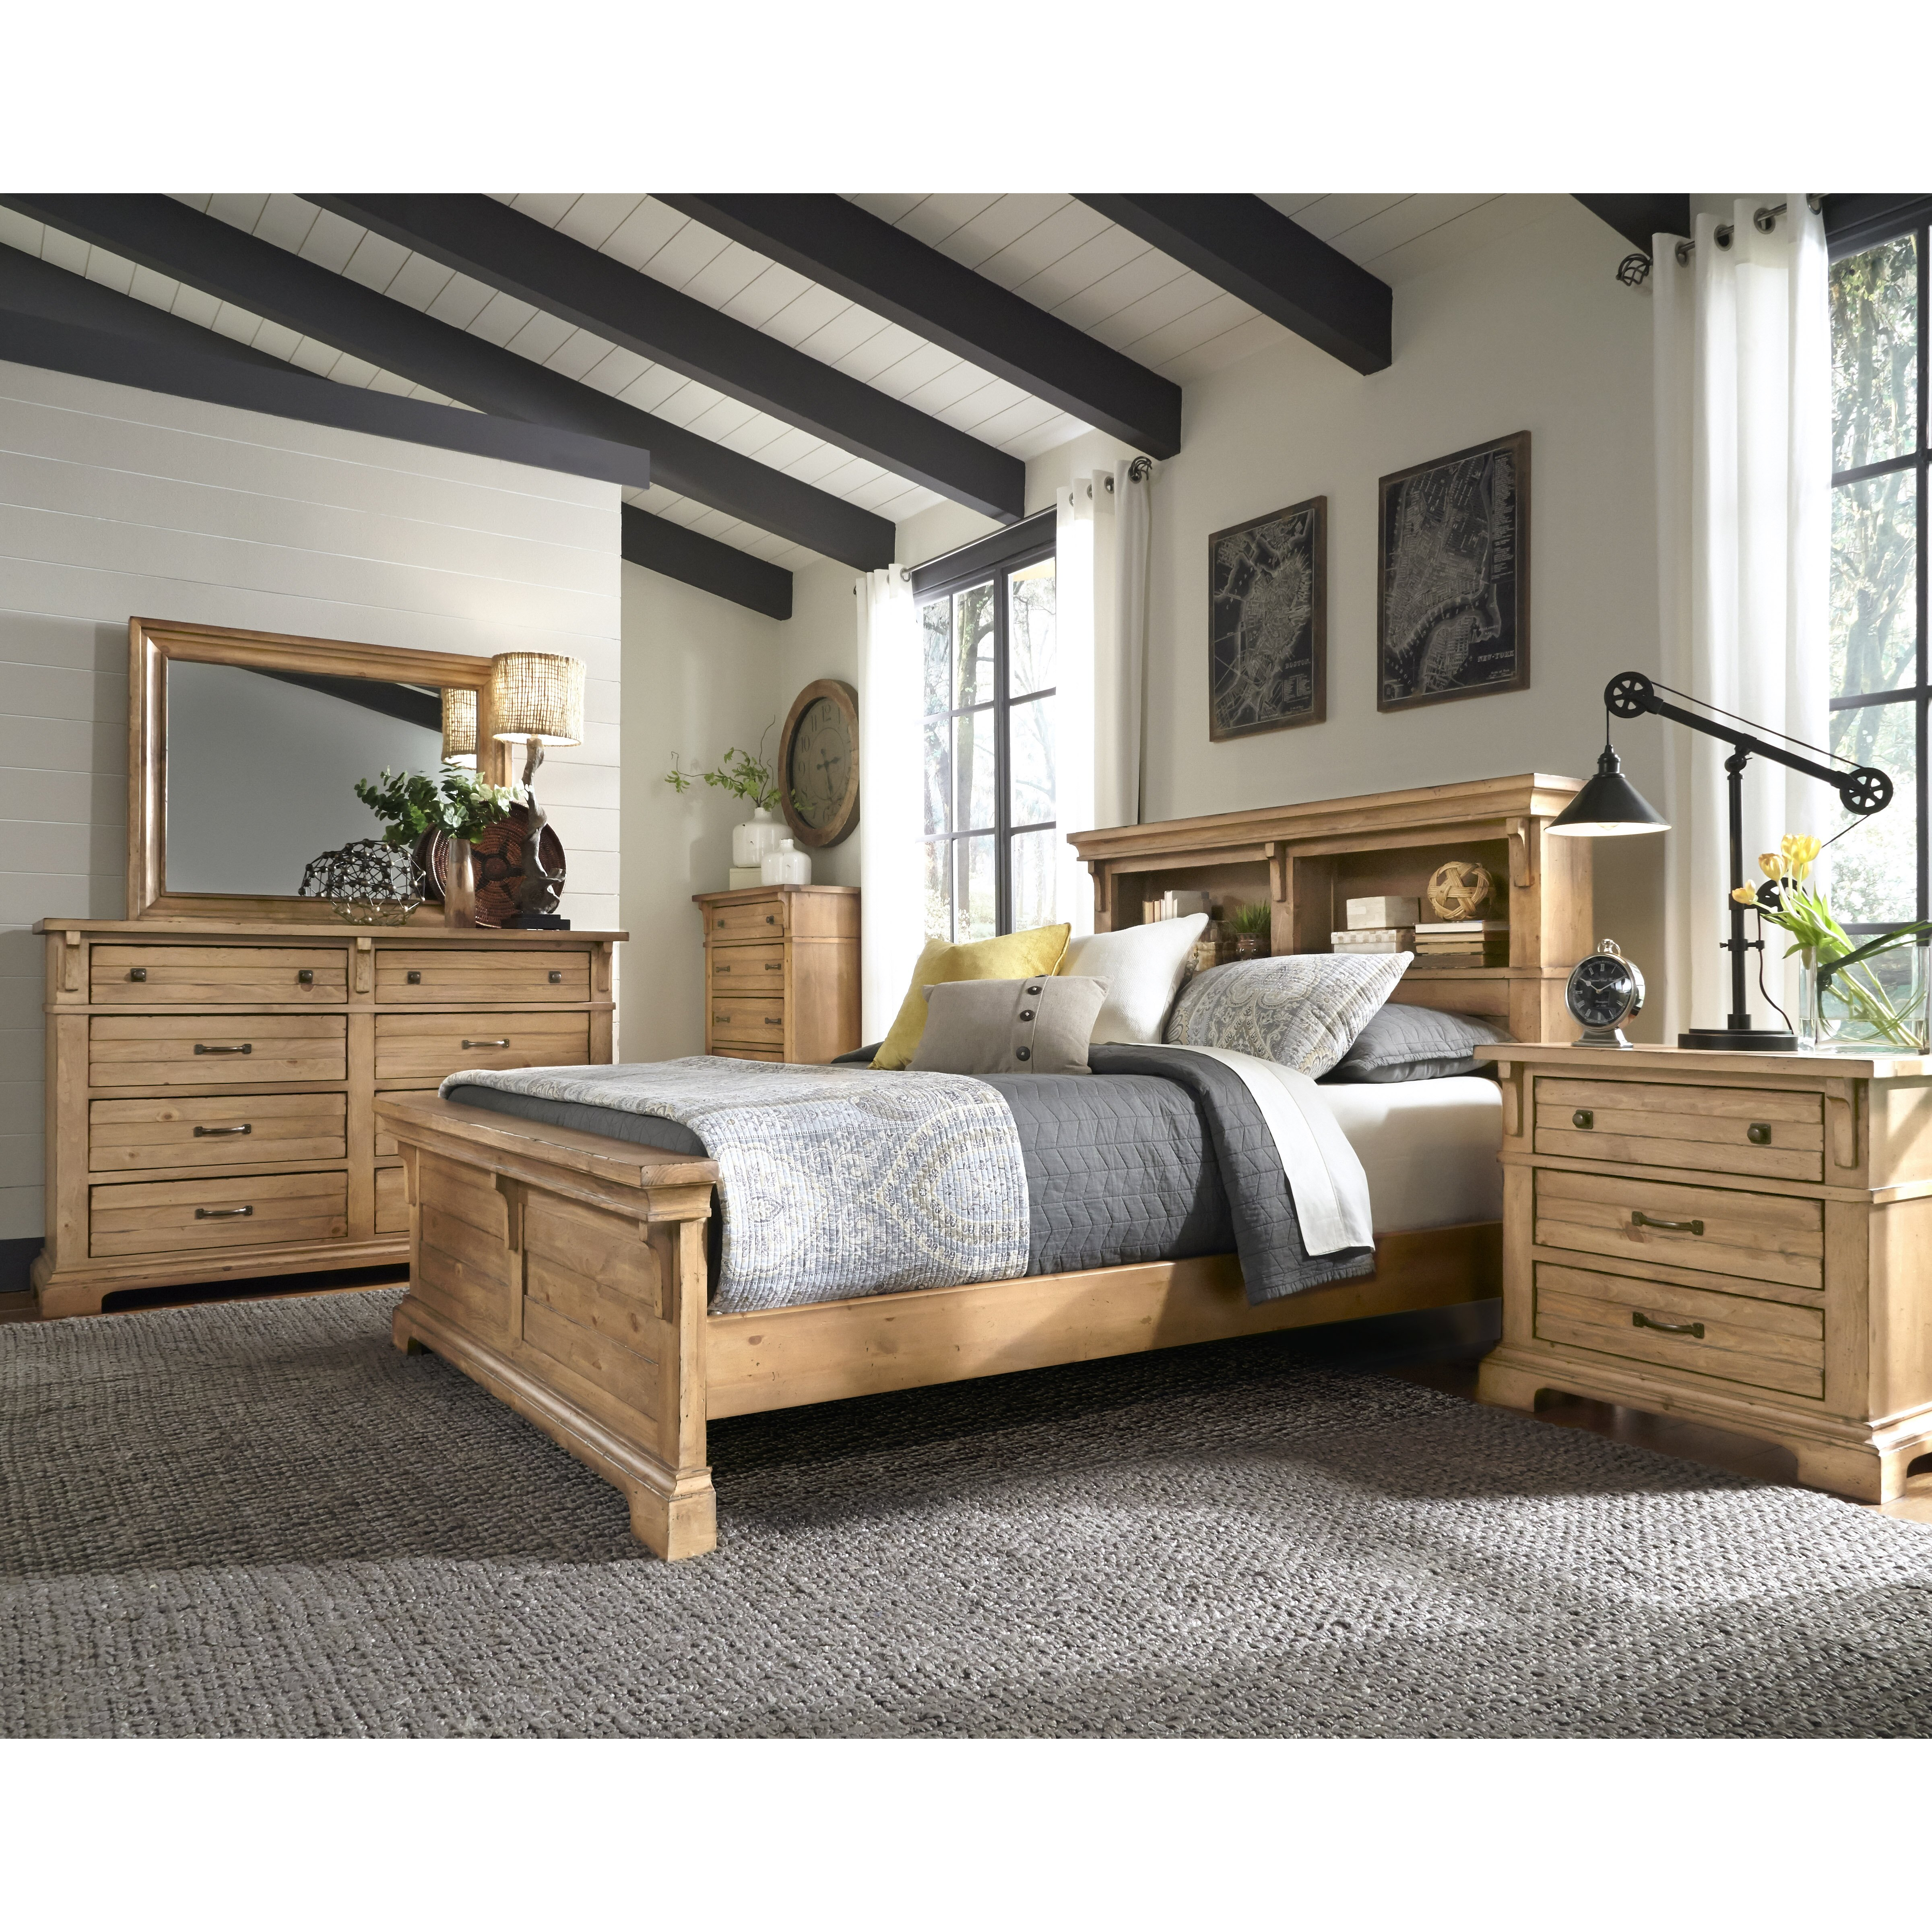 Chestnut hill wood bookcase headboard wayfair - Bedroom furniture bookcase headboard ...